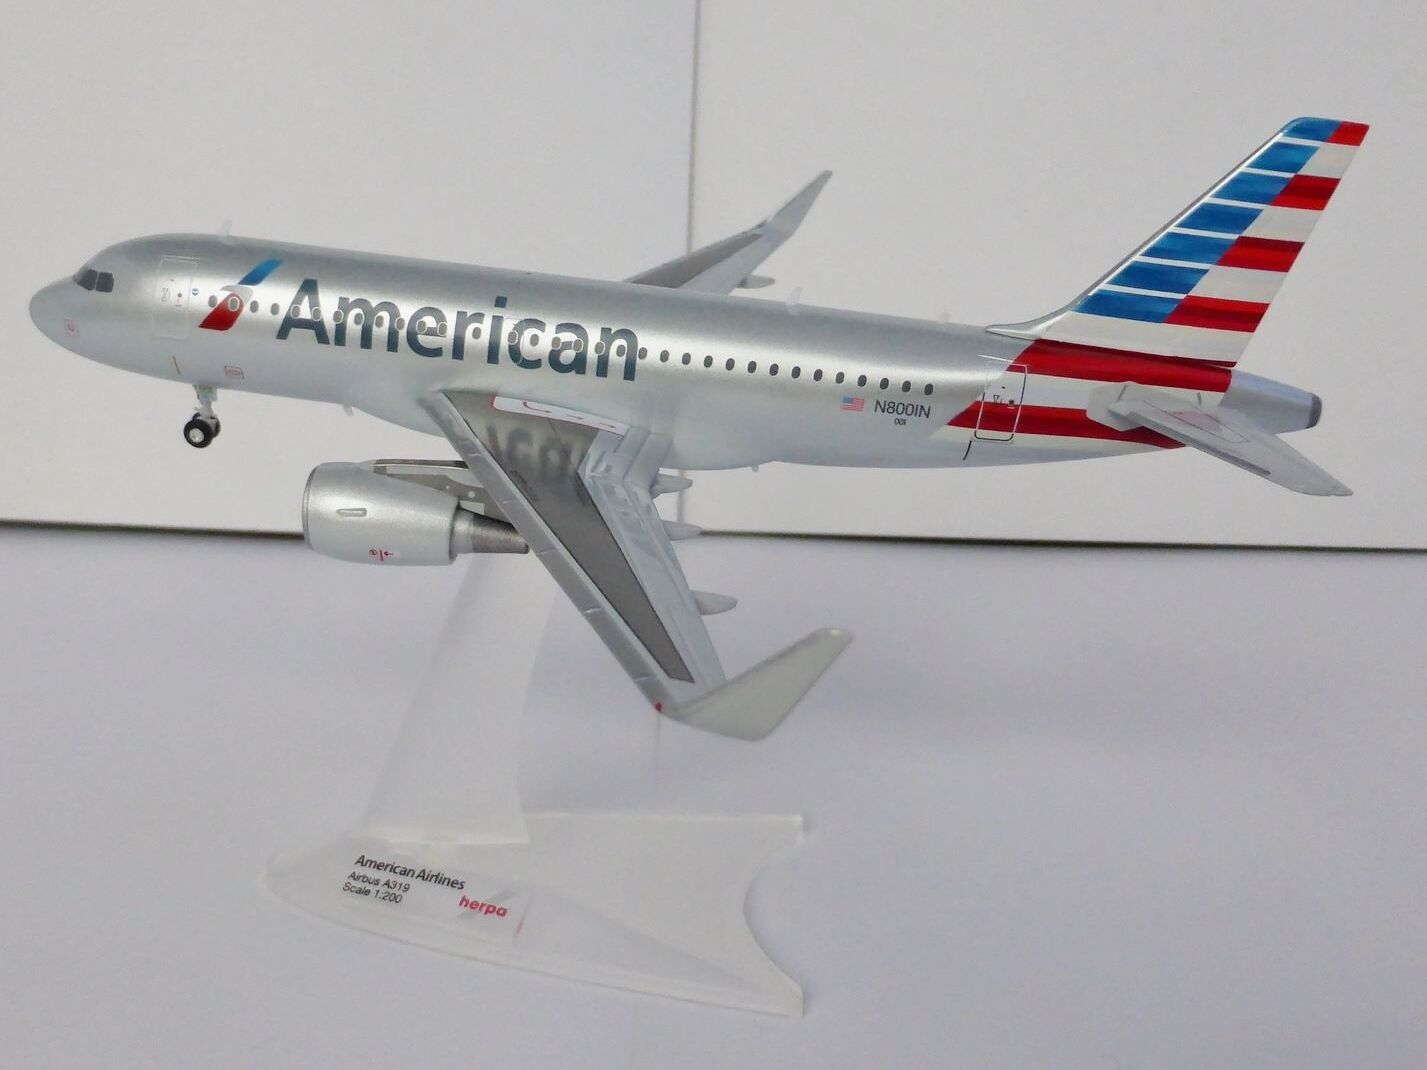 American Airlines Airbus a319 1 200 Herpa 556330 A 319 n8001n AA Sharklets a320